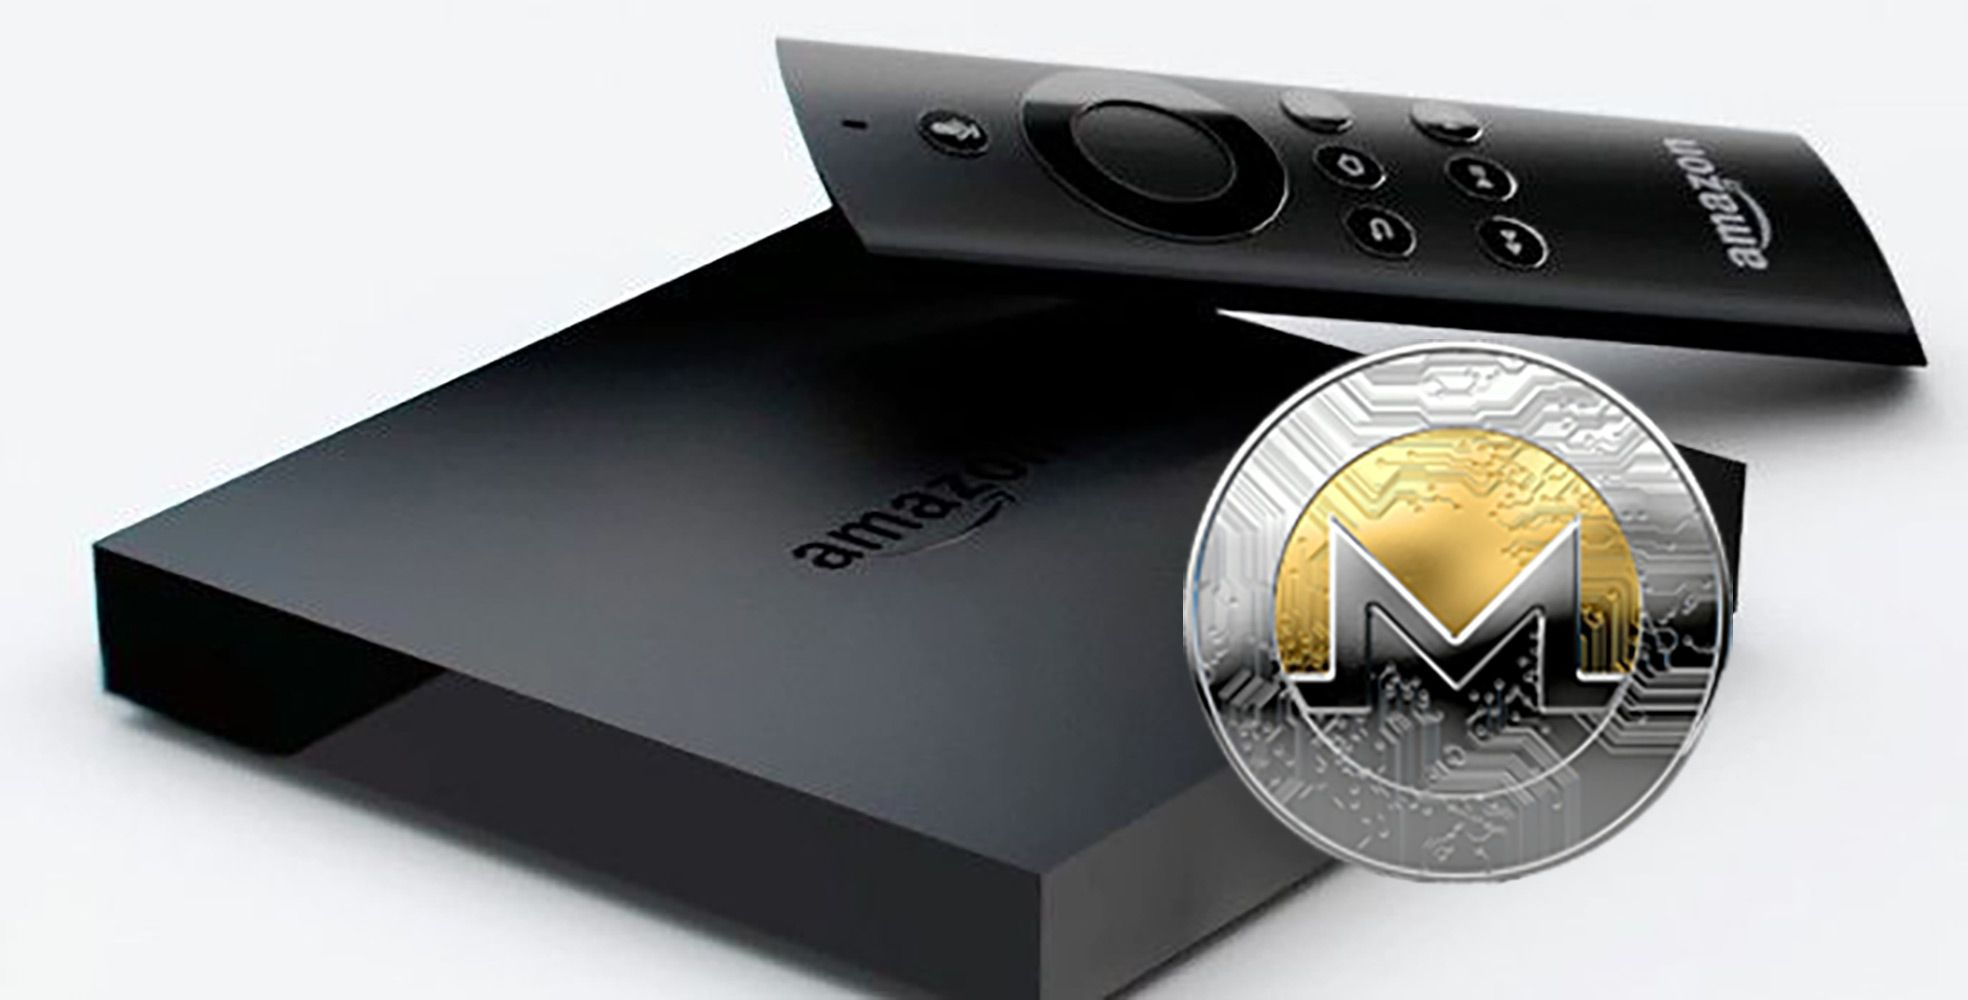 Android malware infects Amazon TV devices Amazon, Tvs